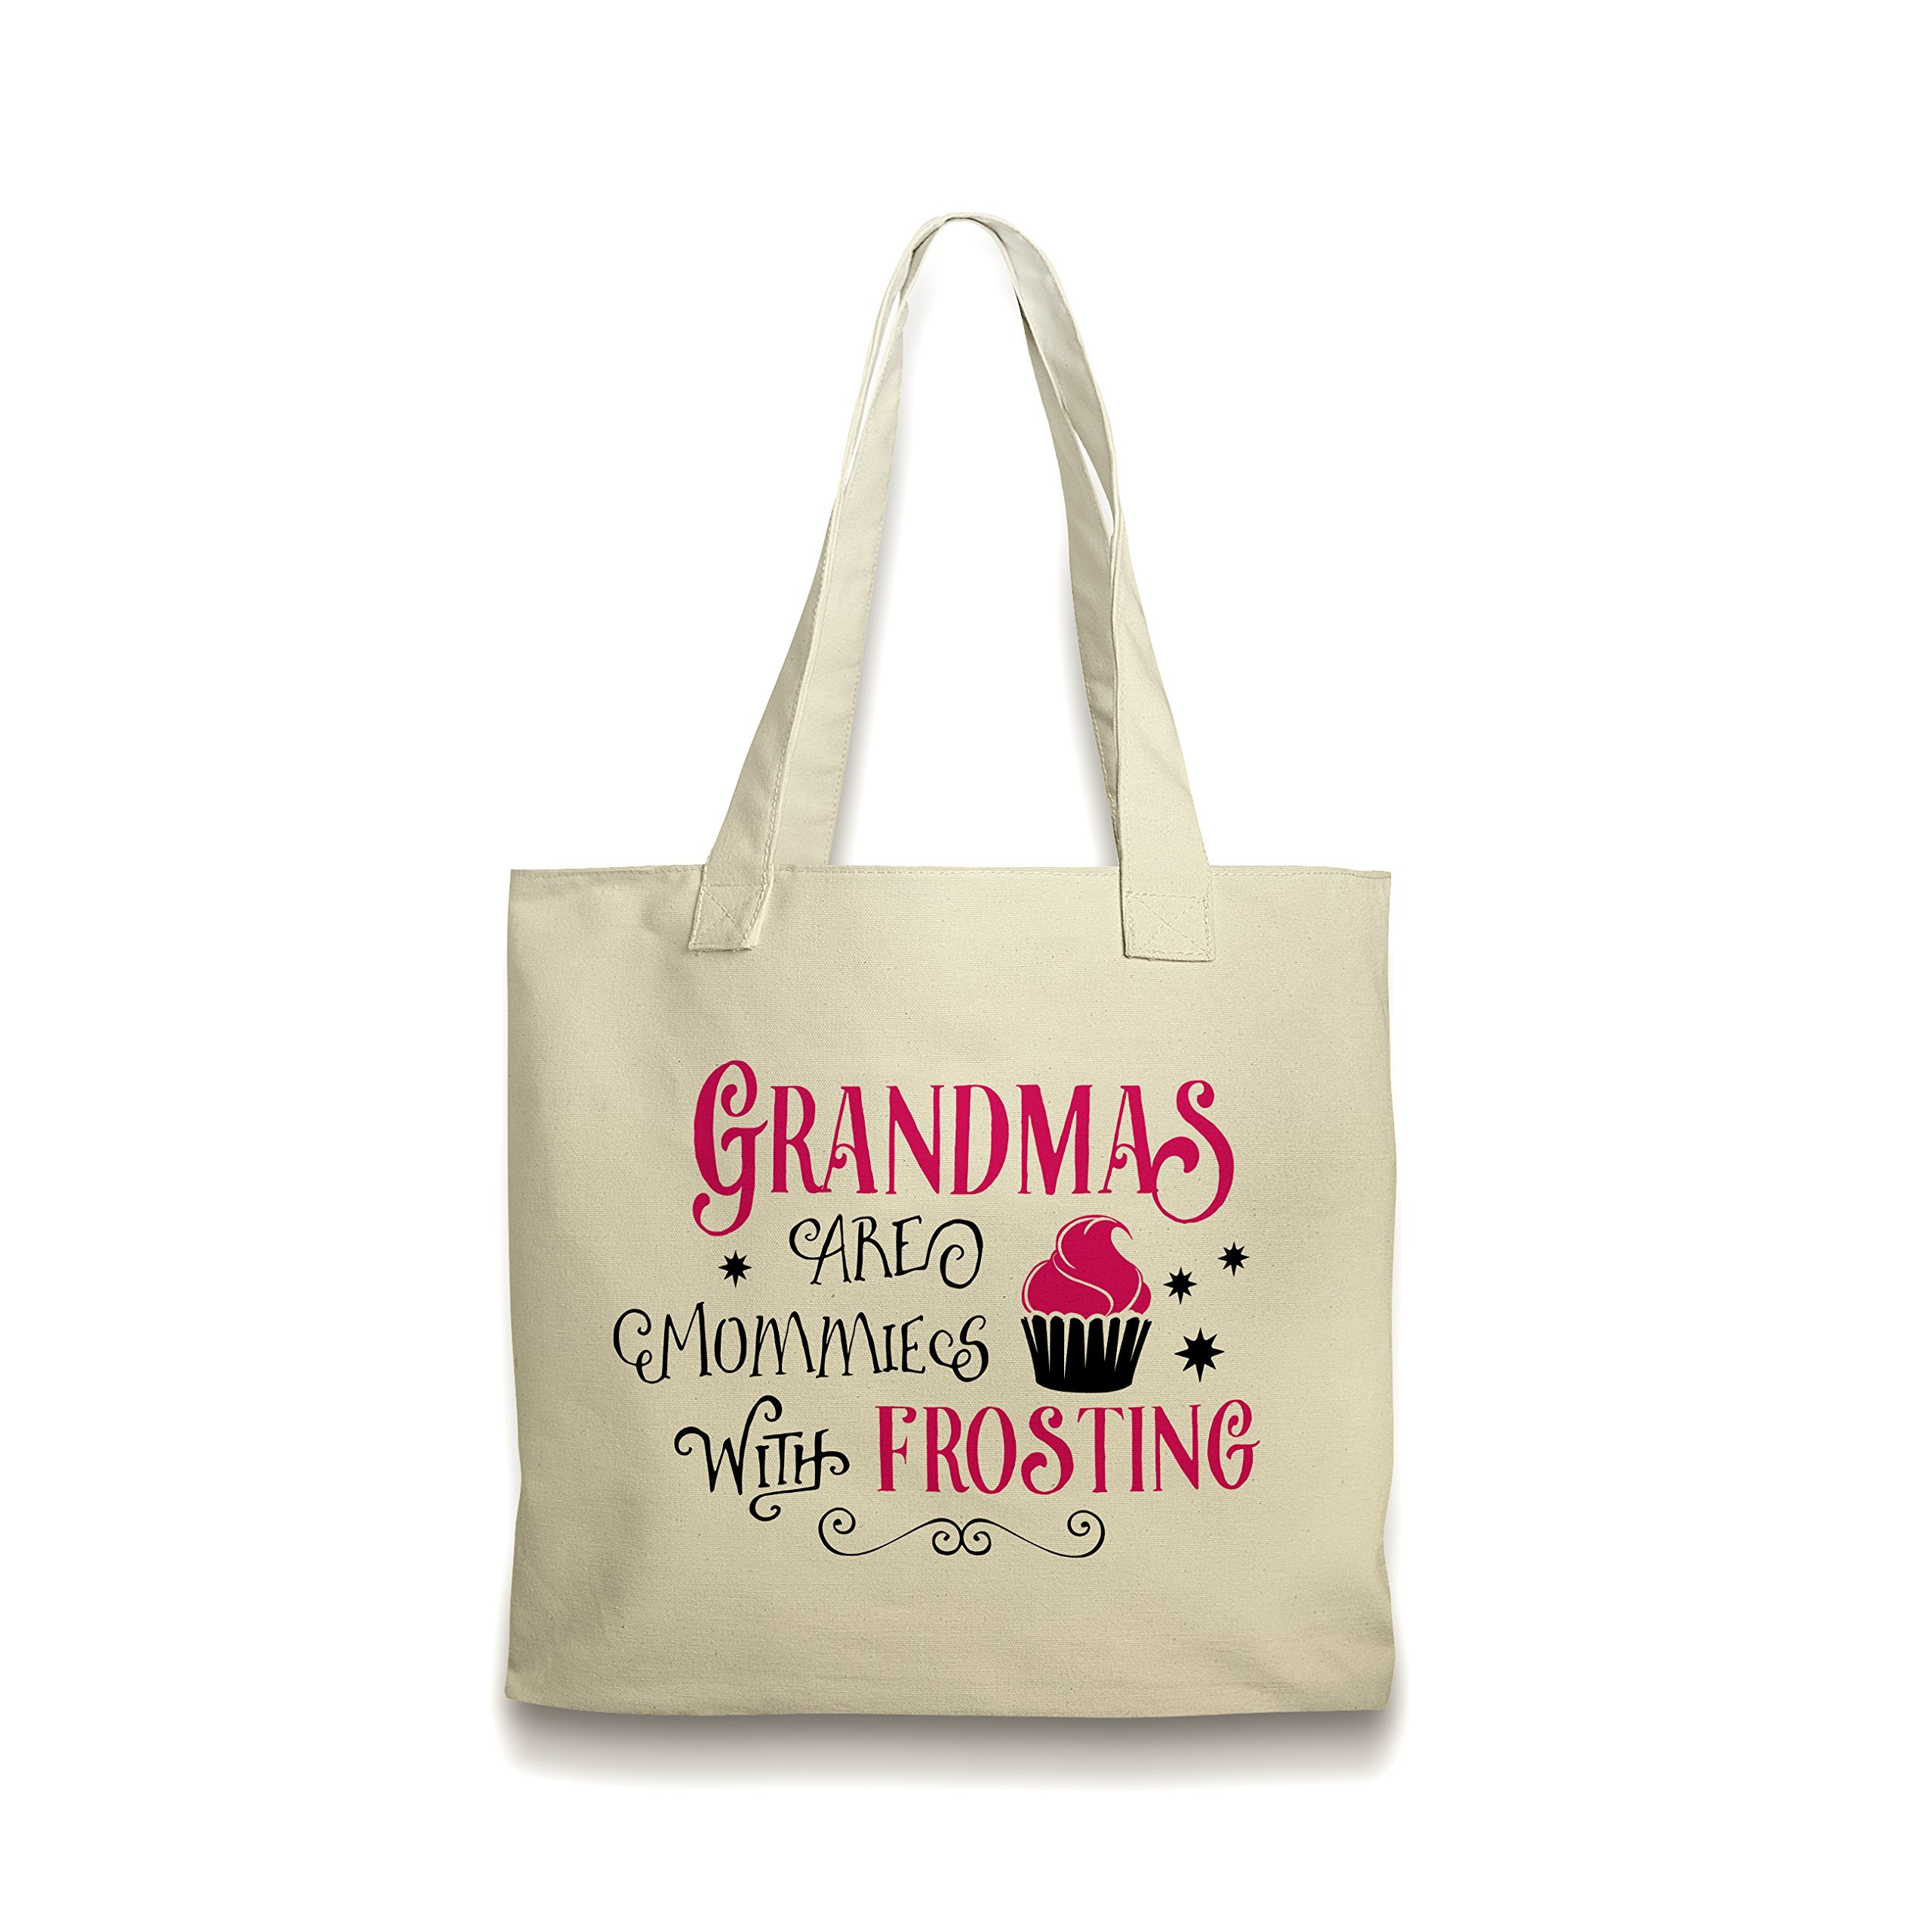 Grandma Tote Bag Canvas Pink Cupcake Frosting Gift for Grandmother